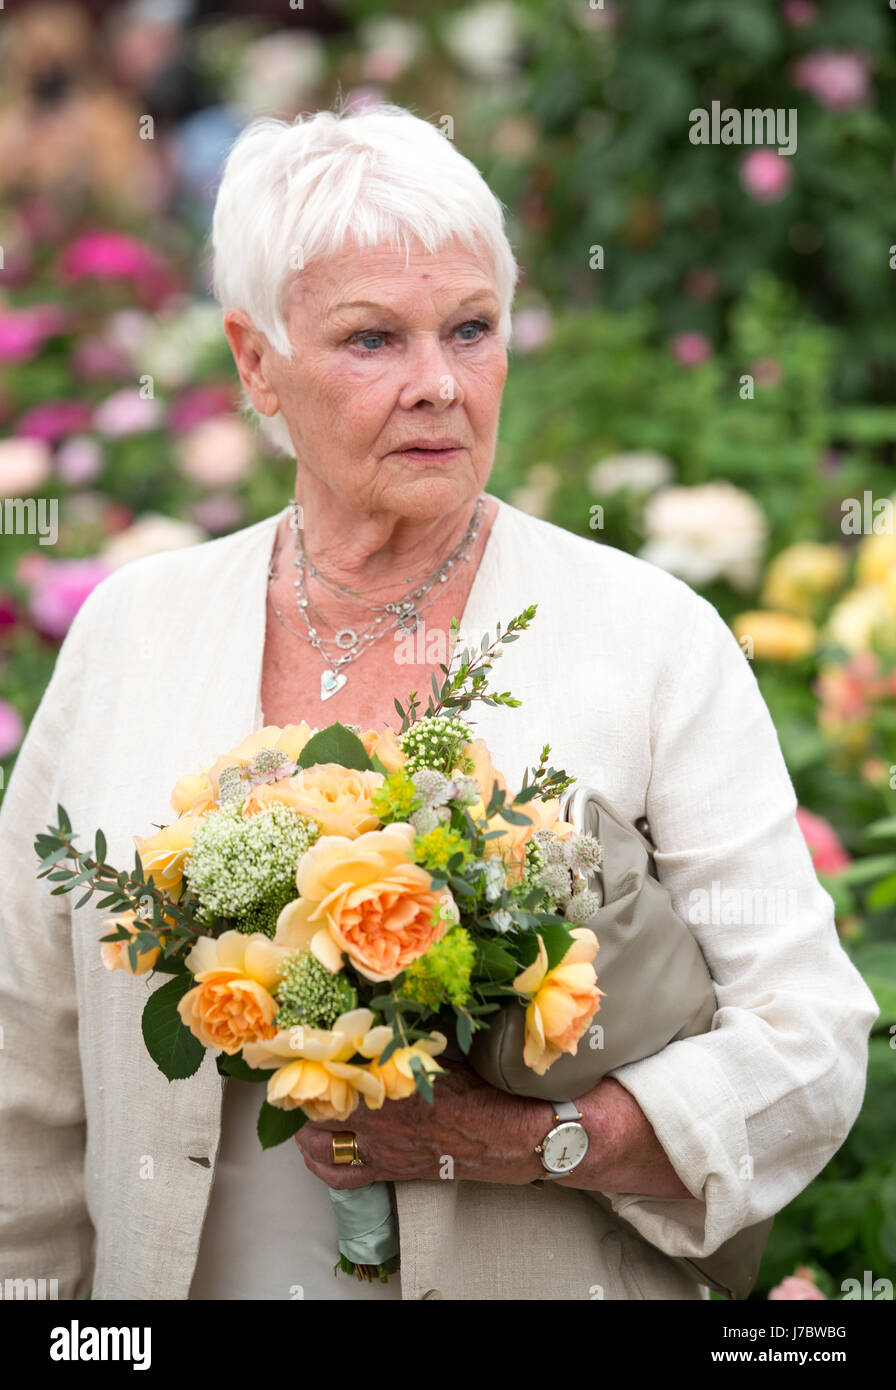 Actress Dame Judi Dench at the RHS Chelsea Flower Show 2017 Stock Photo